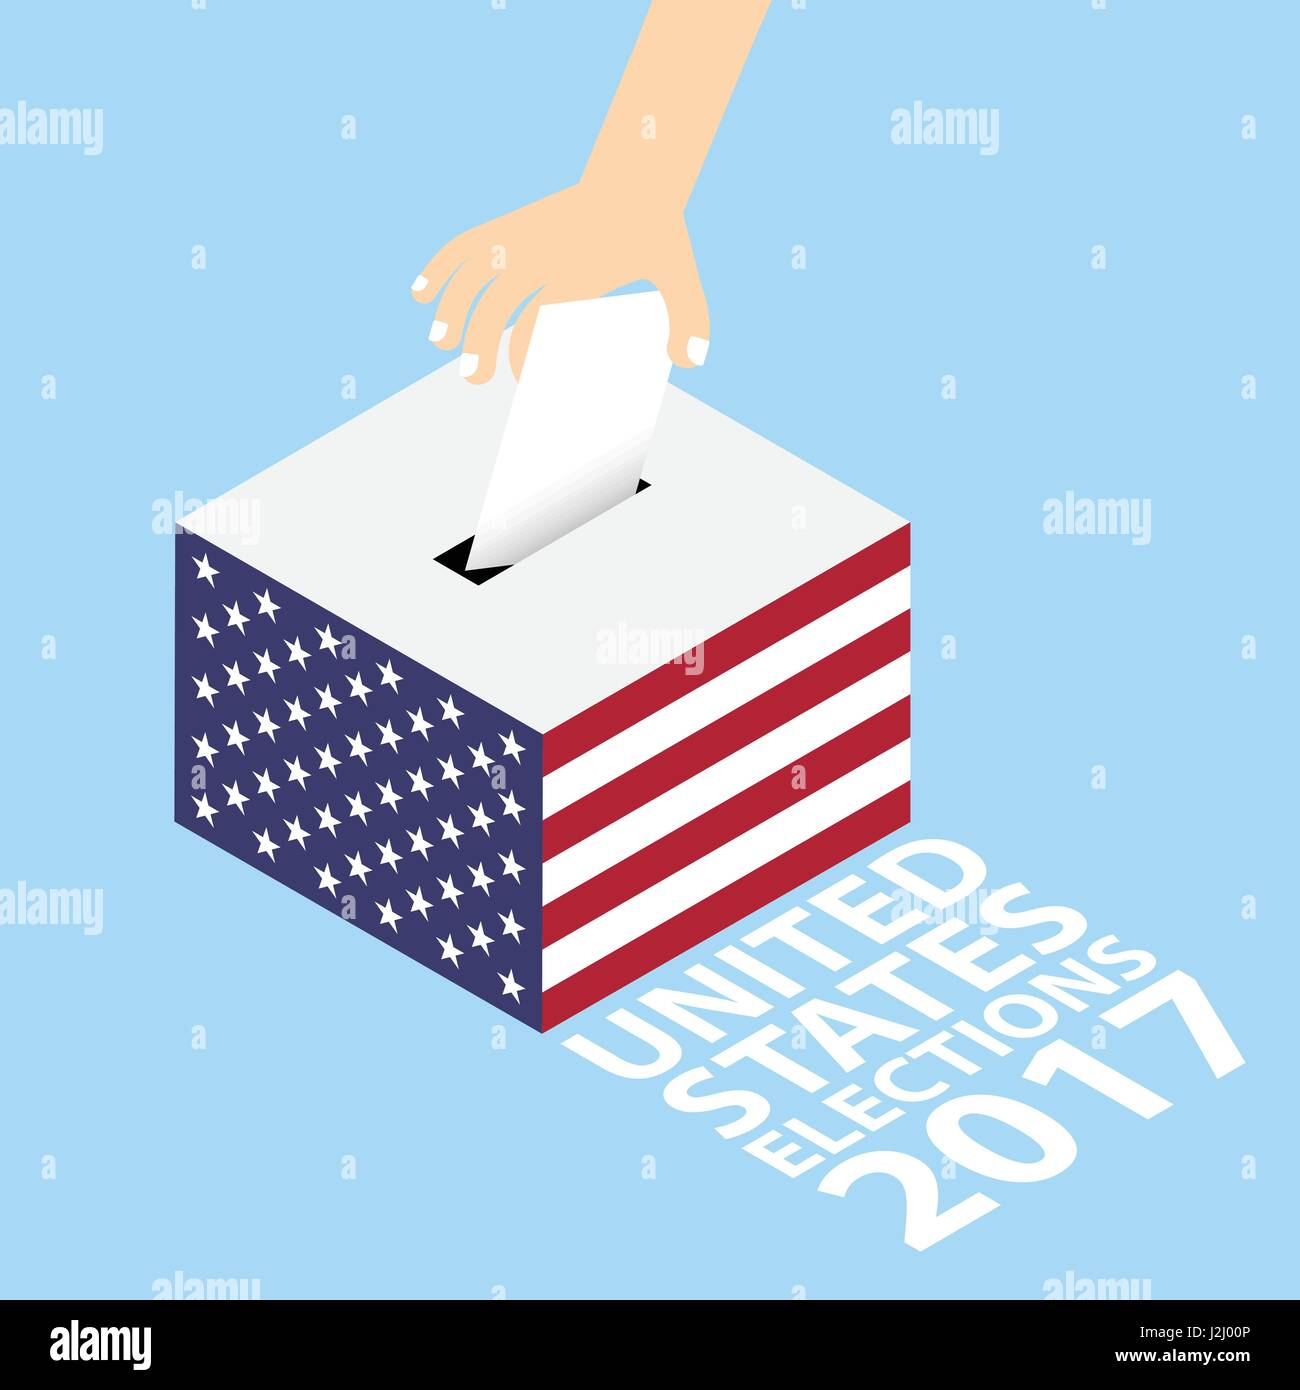 United States (US) Elections 2017 Vector Illustration Flat Style - Hand Putting Voting Paper in the Ballot Box - Stock Image